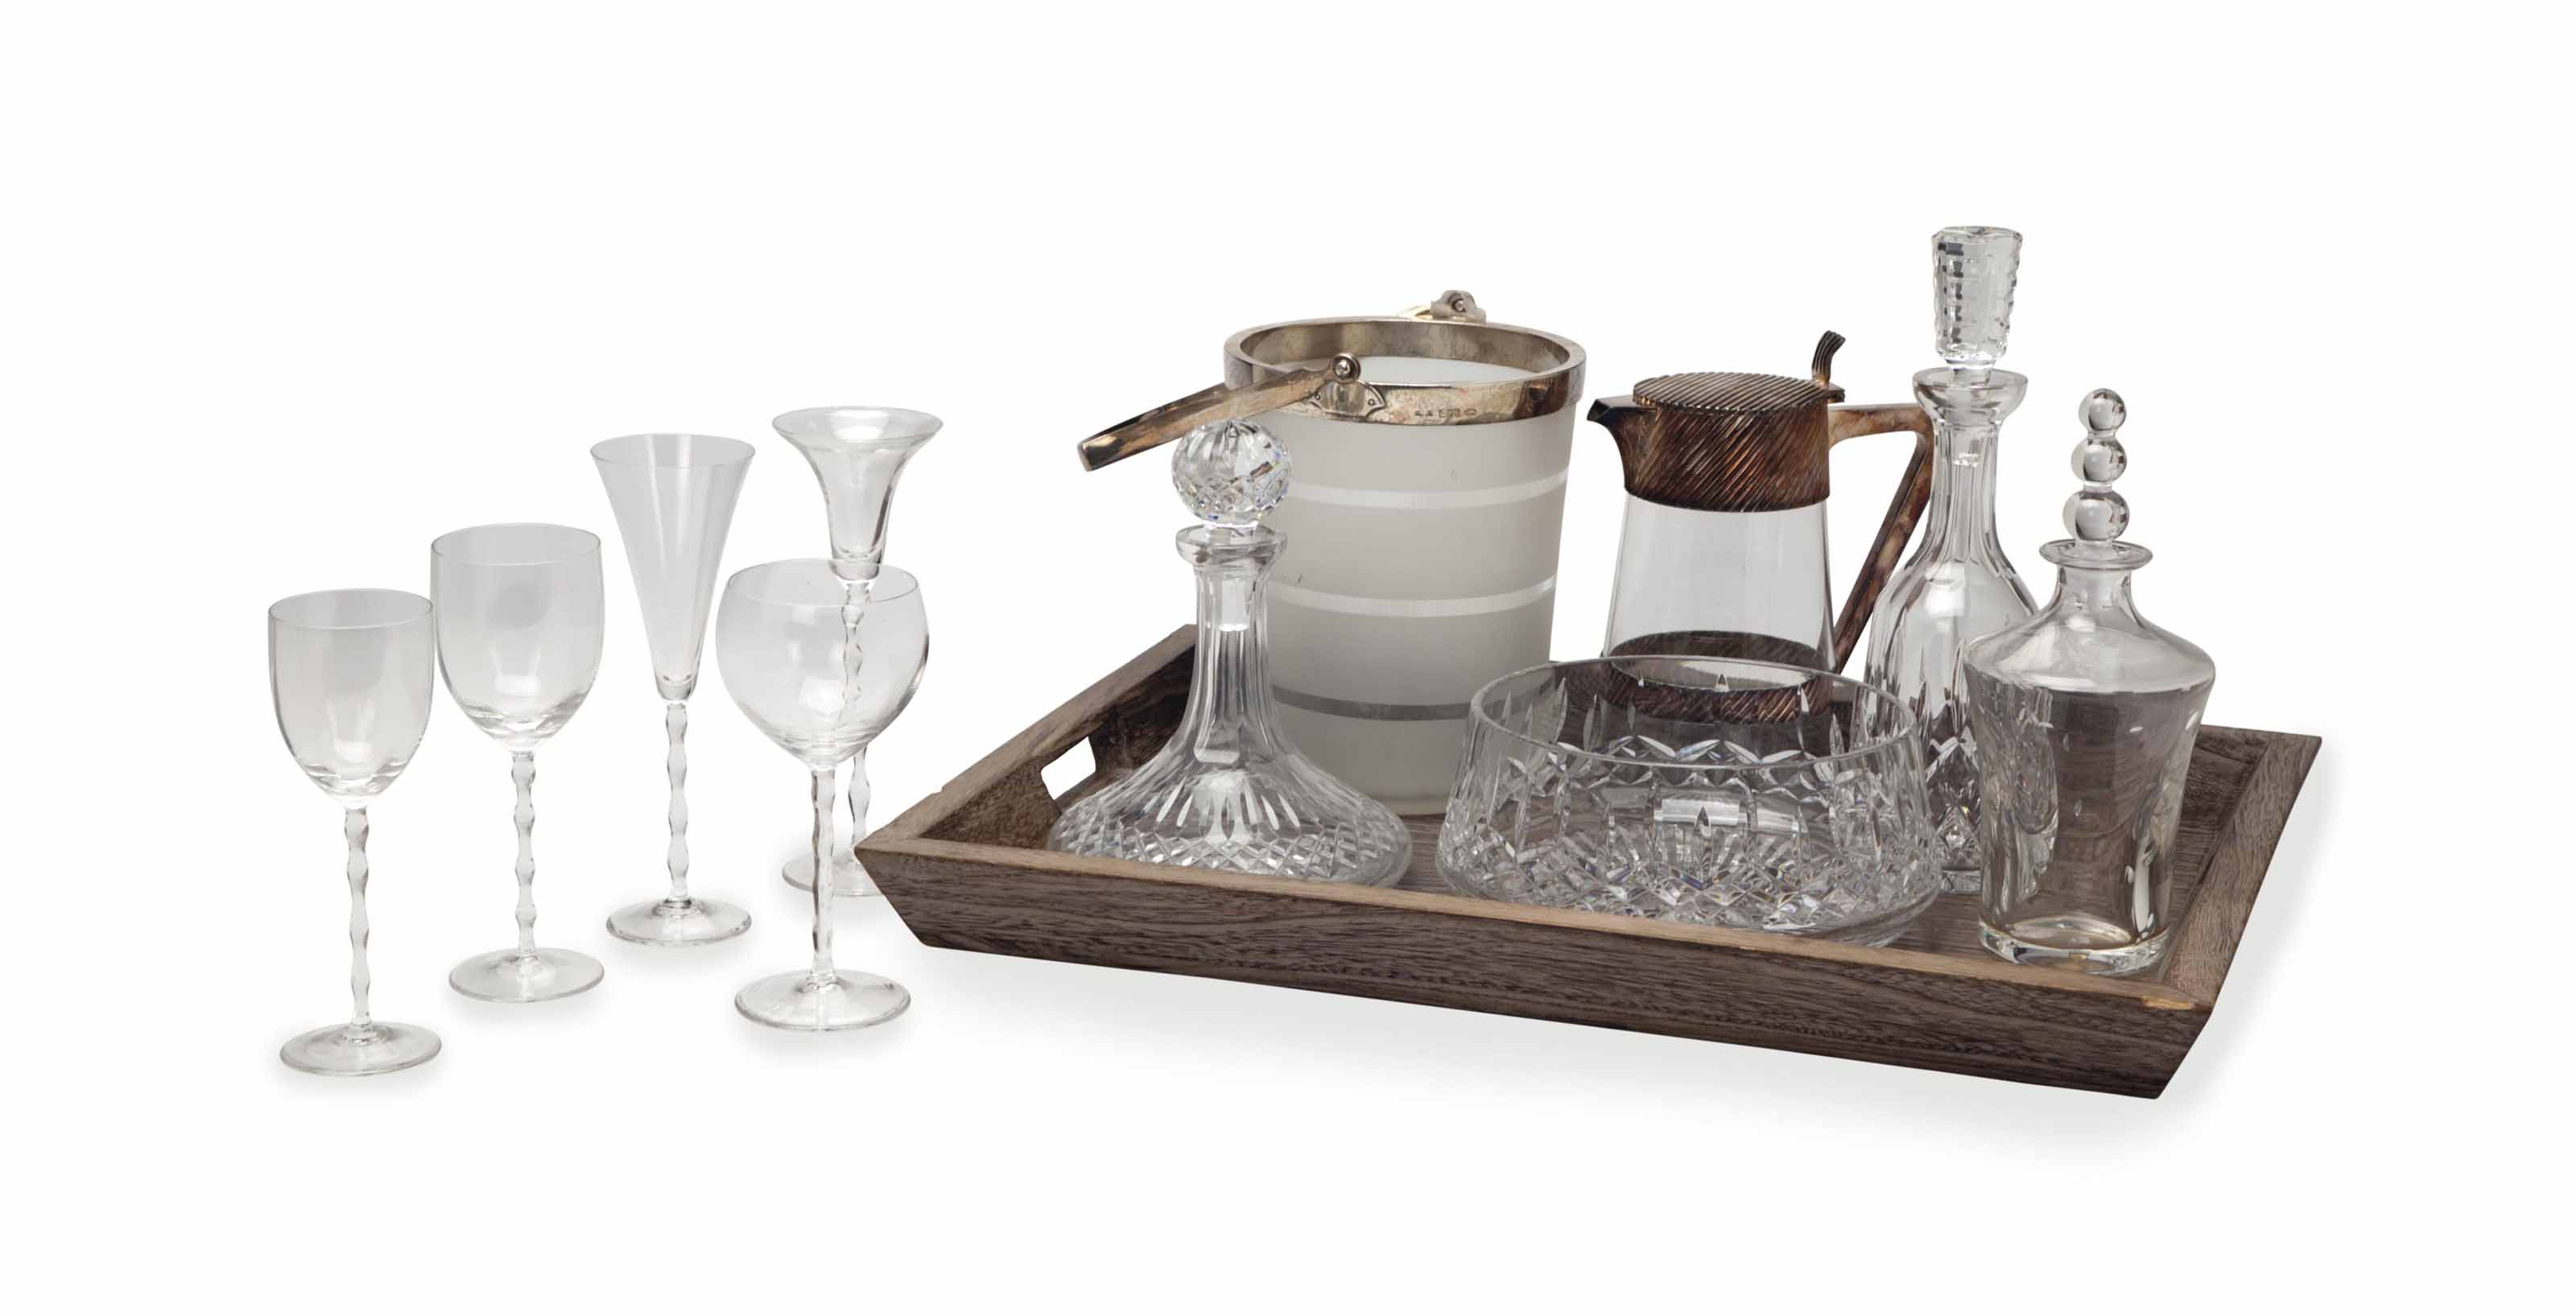 AN ASSEMBLED GROUP OF ENGLISH, IRISH, FRENCH AND GERMAN GLASS DRINKWARE,